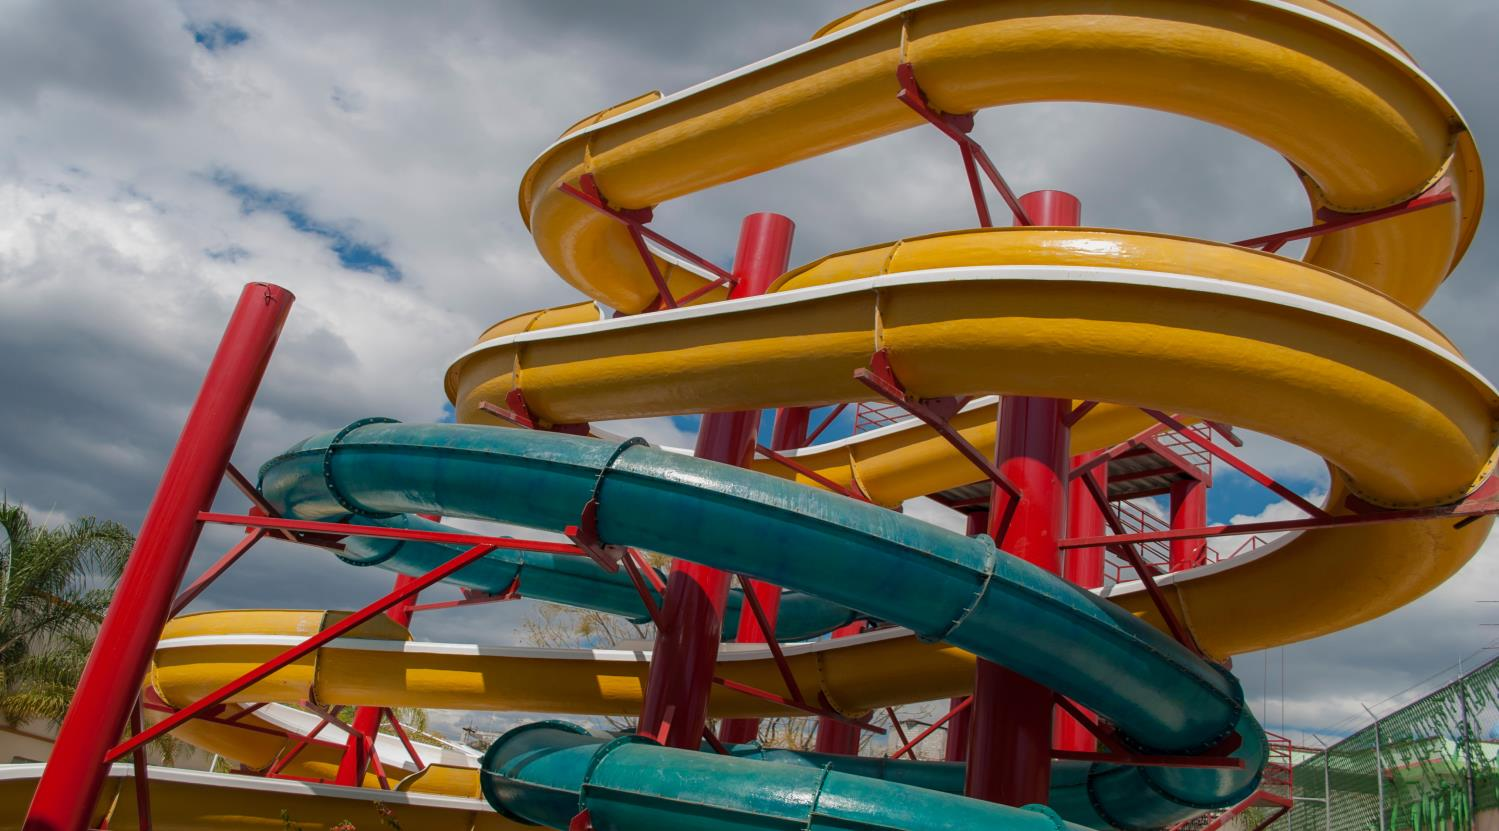 2MW Heating & Hot water turnkey solution package to Large Leisure Park in record time